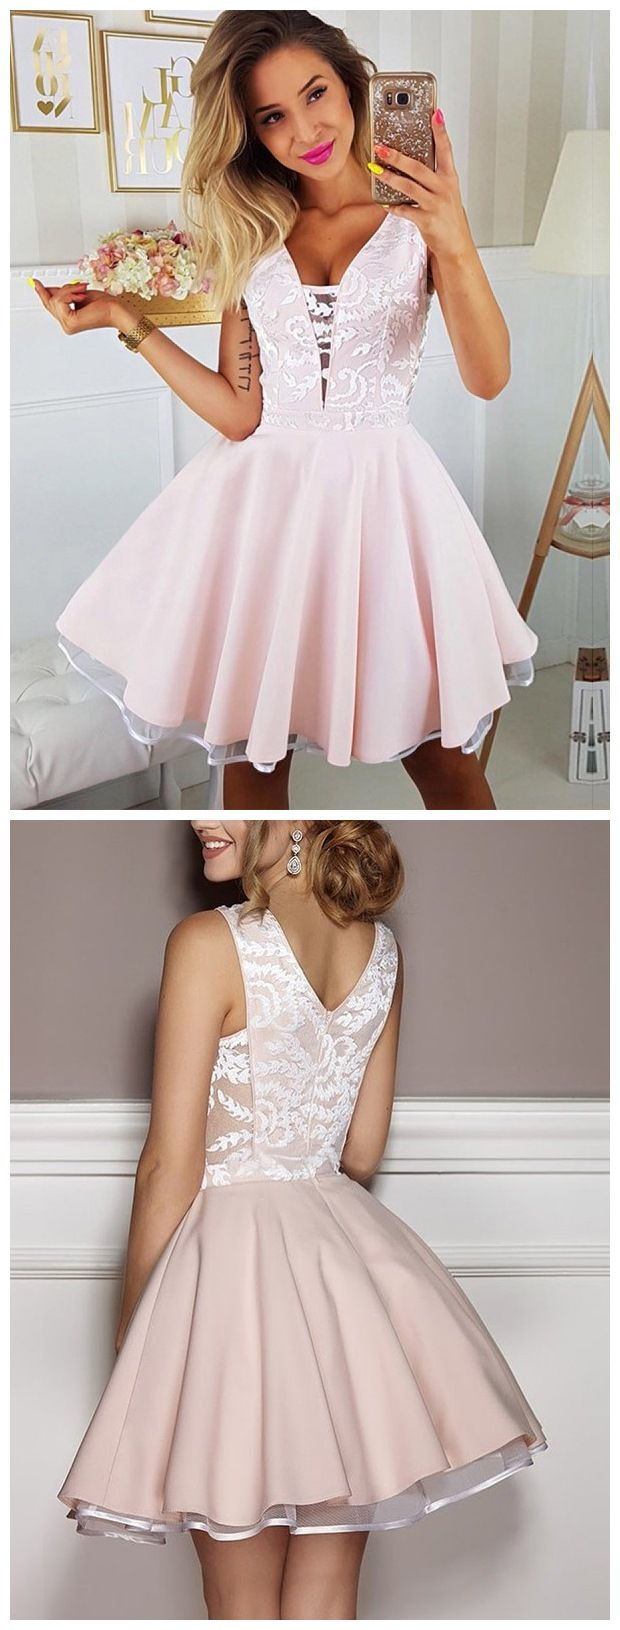 Pink dress hoco  Pink Lace Appliqued Mini Homecoming Dresses V Neck Short Hoco Dress